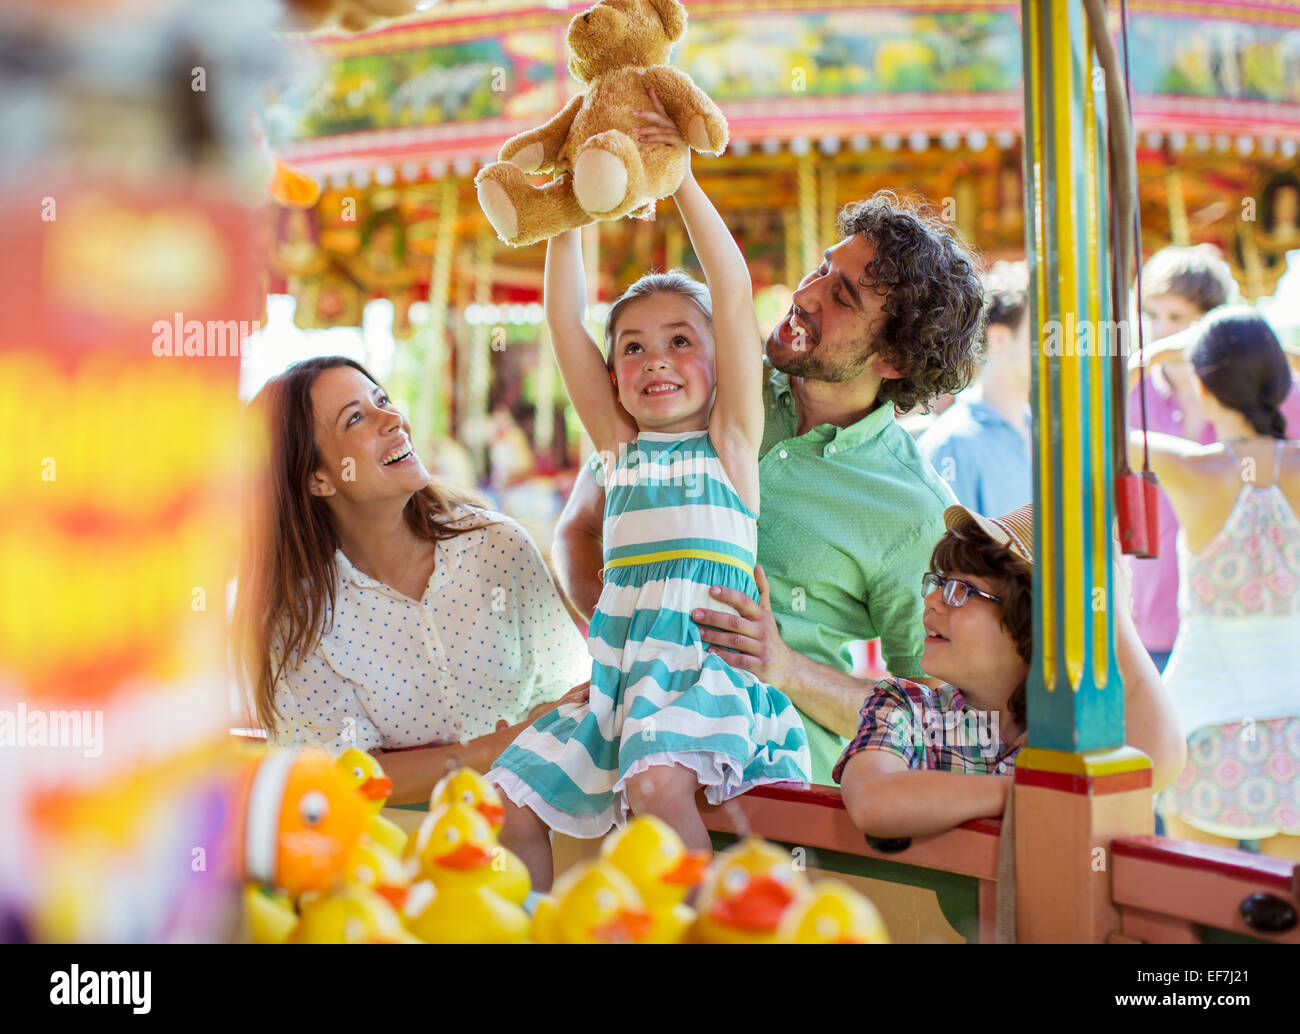 Girl holding teddy bear as trophy in fishing game in amusement park - Stock Image